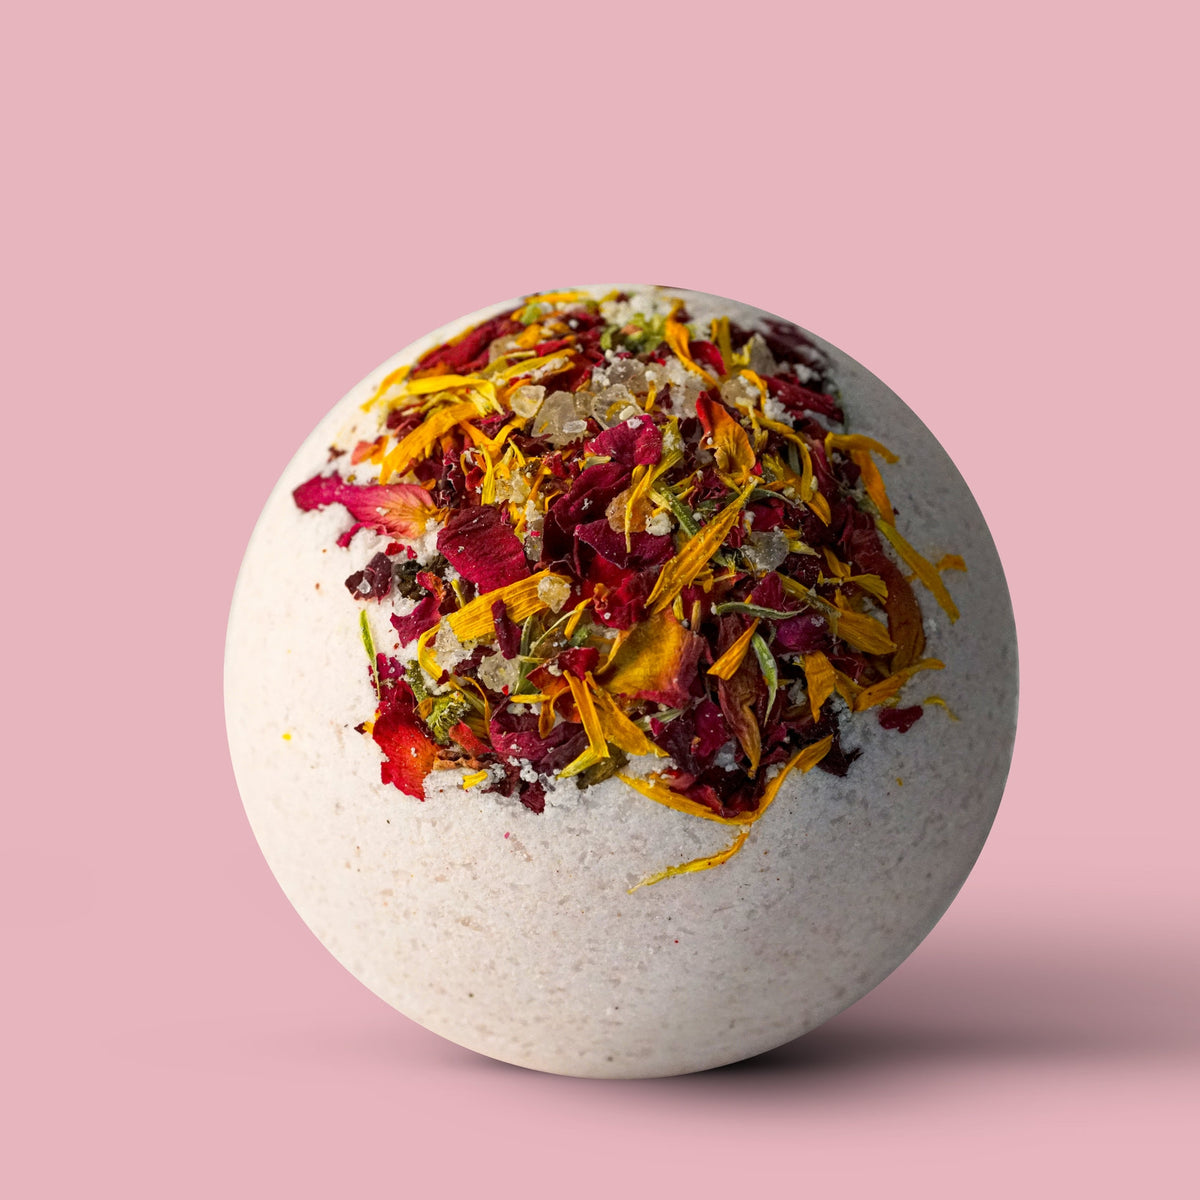 Cherish Bath Bomb- Floral & Citrus Notes